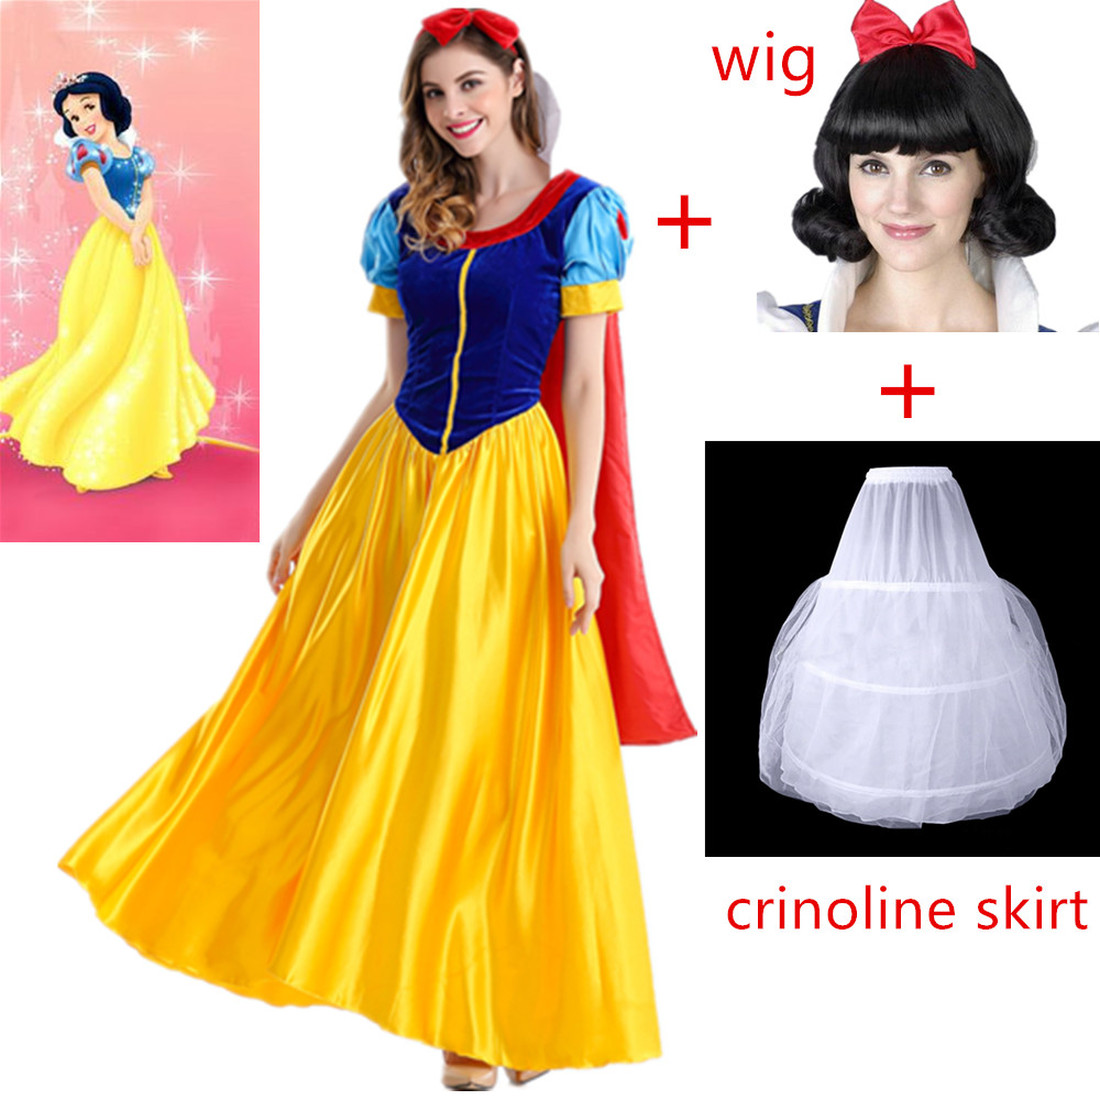 Women Snow White Dress Adult Prom Princess Dress Birthday Party Cinderella Snow White Princess Cosplay Costume Carnival Dress